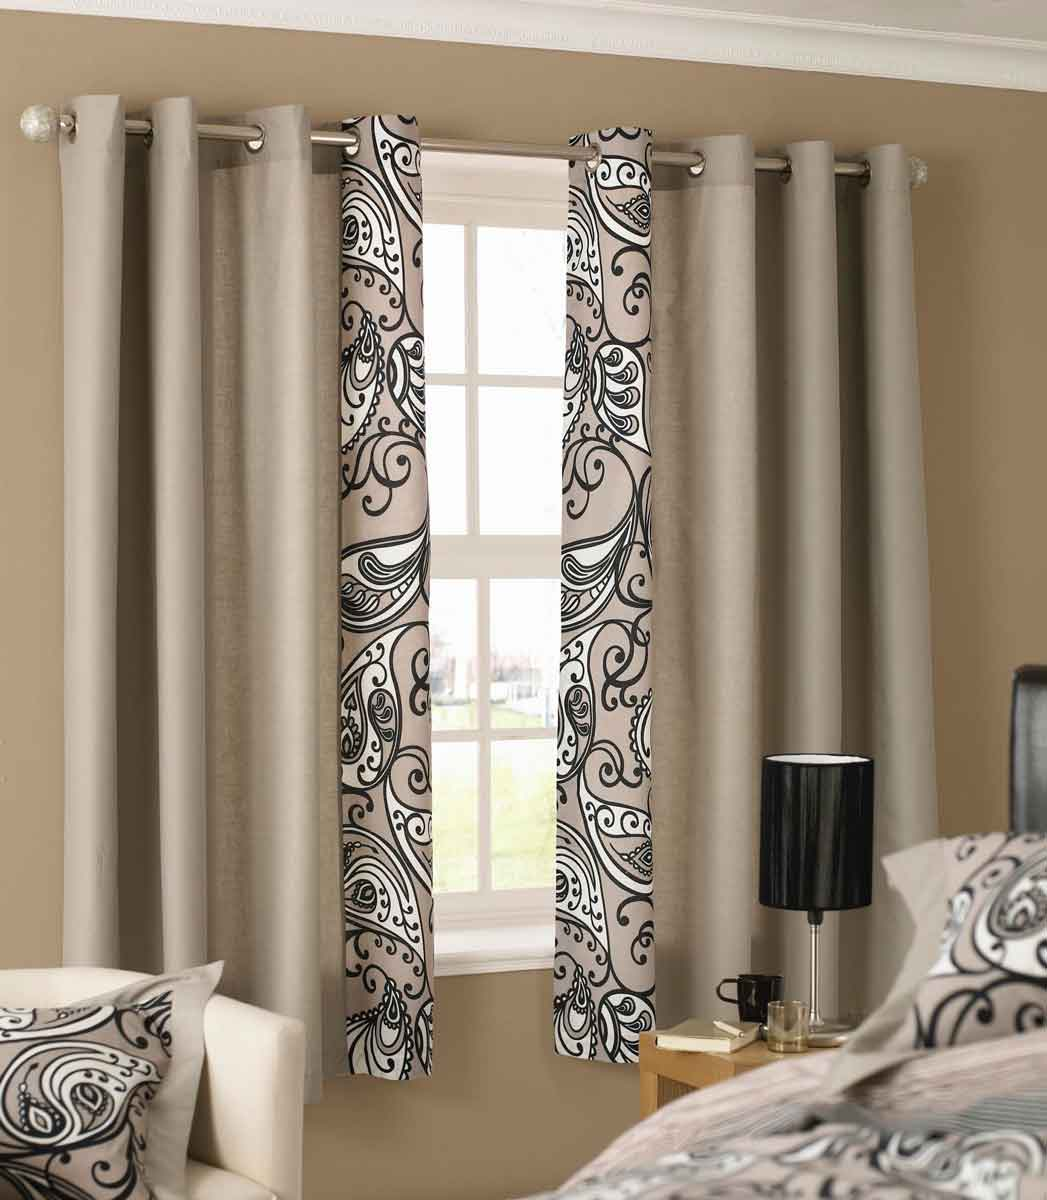 Image small bathroom window curtain ideas beautiful for Curtains for bedroom windows with designs